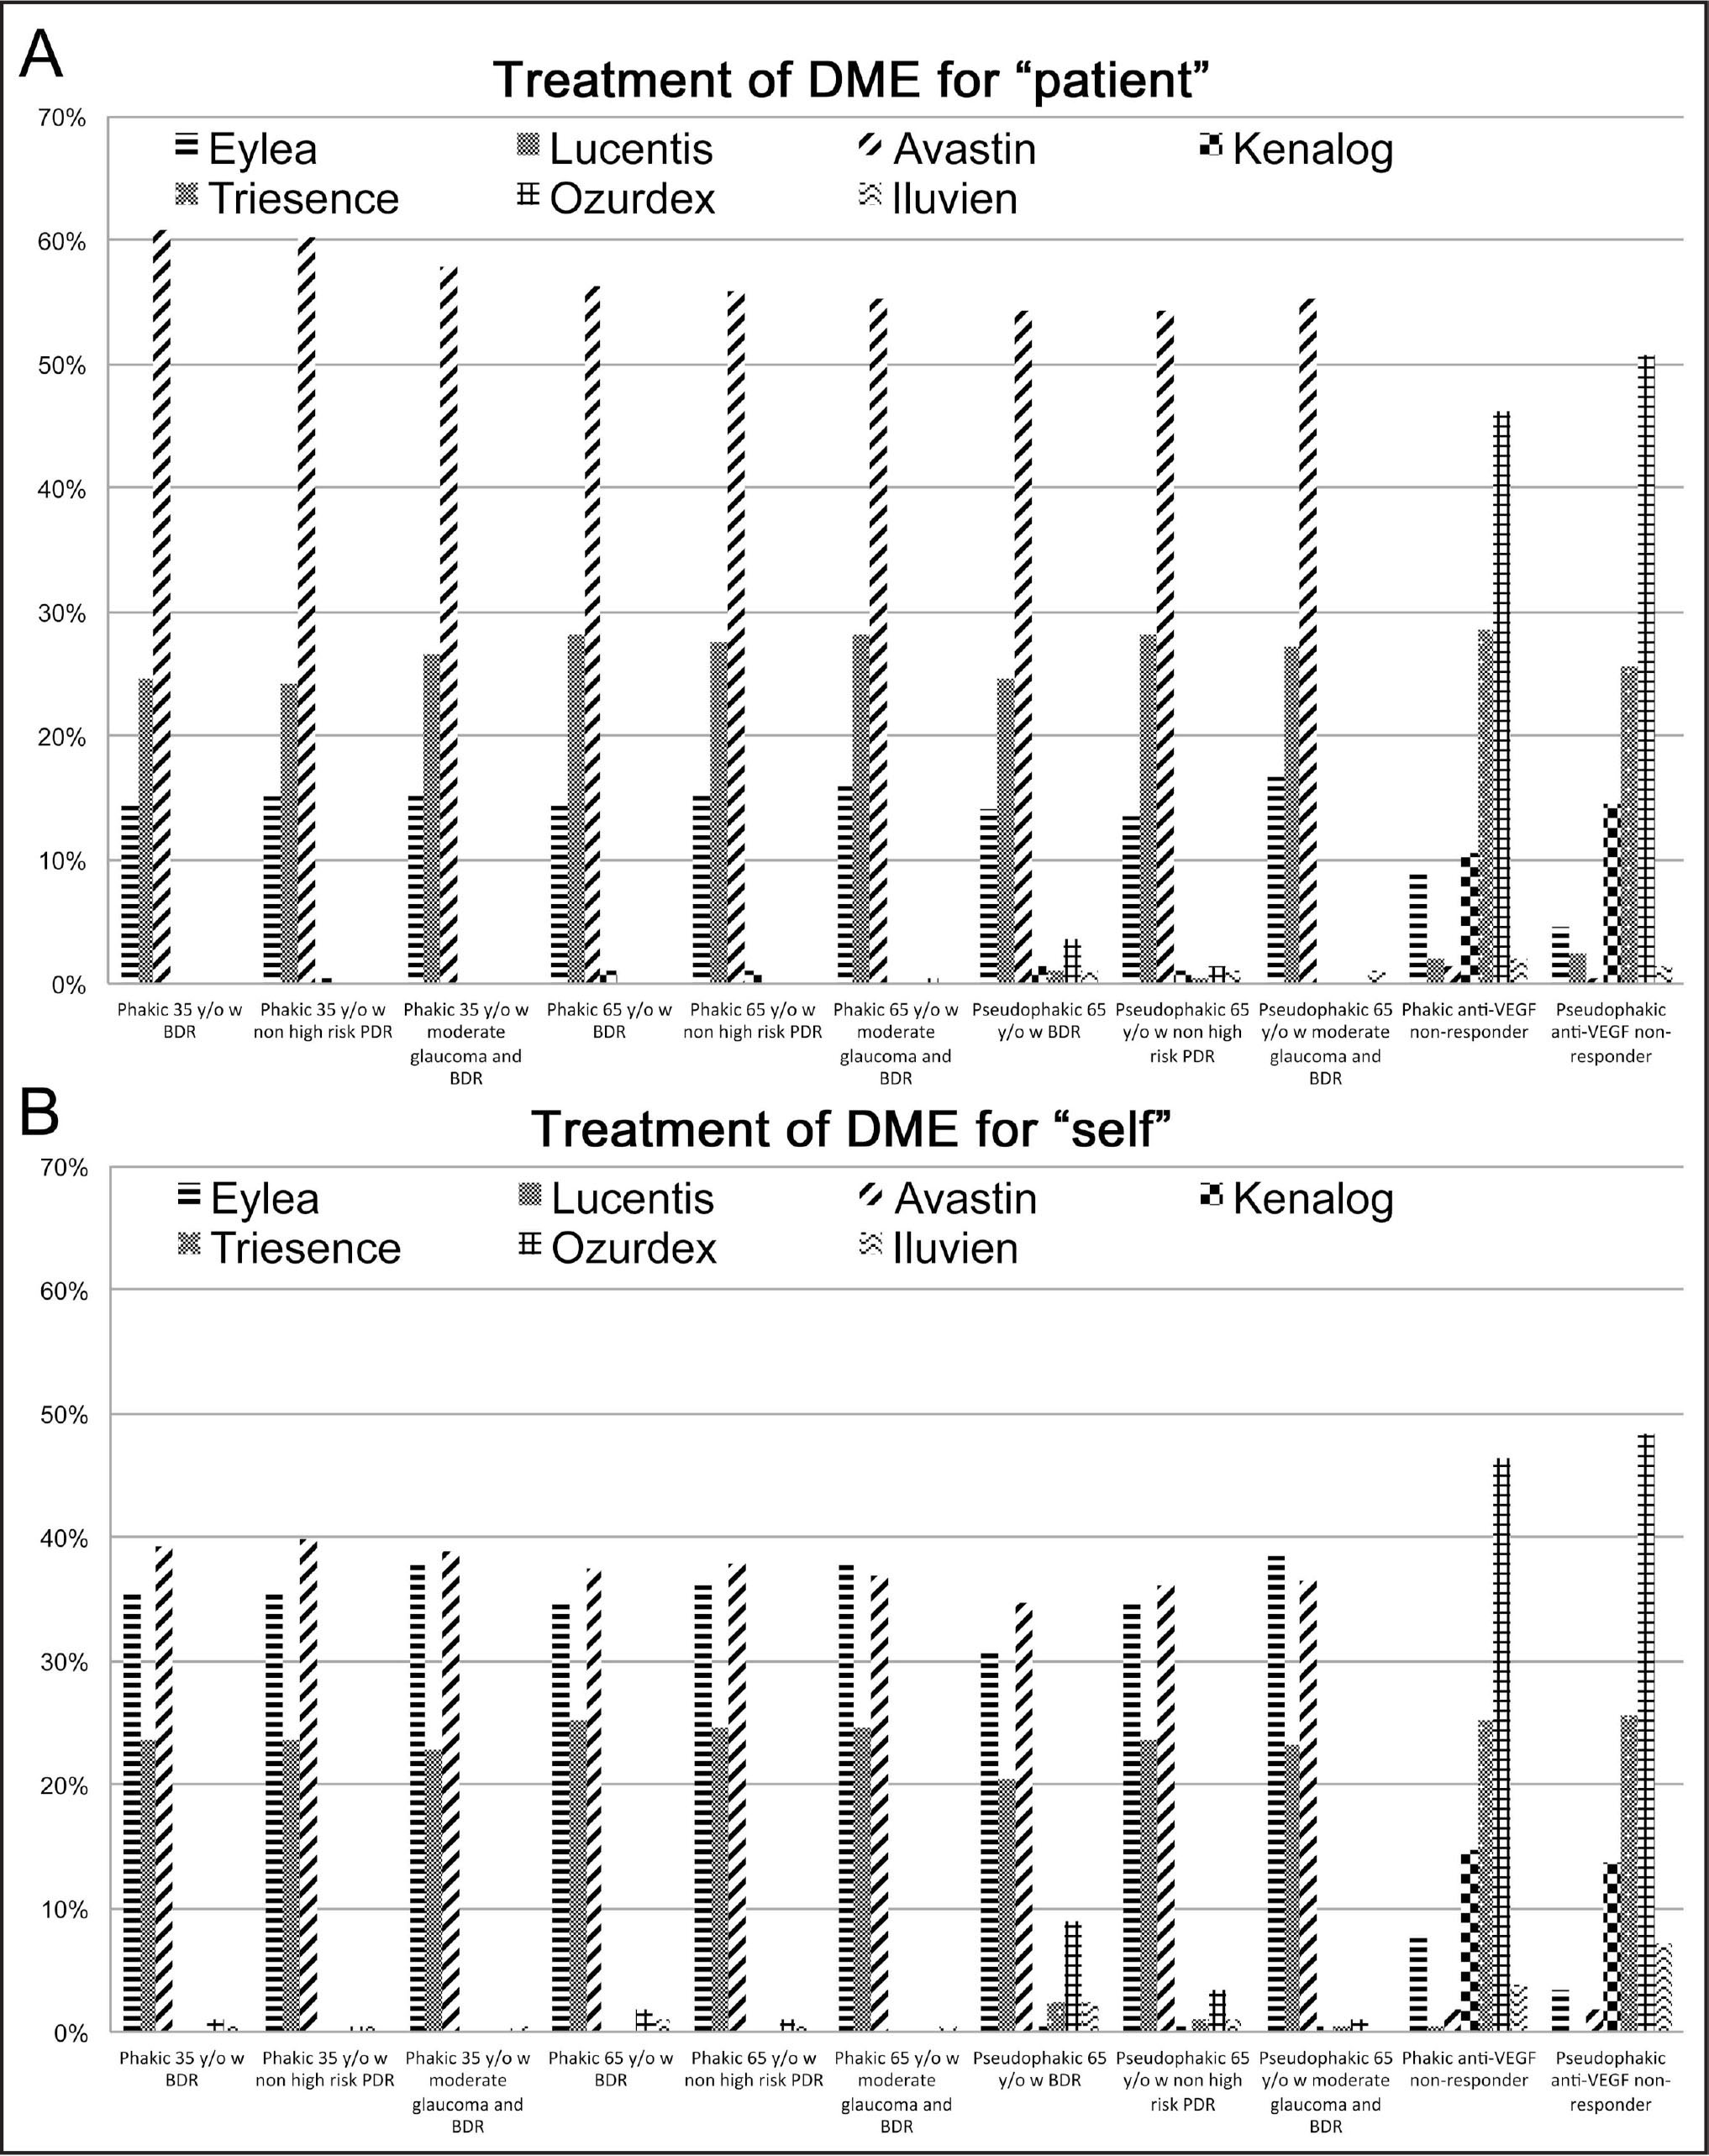 Retina specialists select different therapy for themselves than for a hypothetical patient when treating diabetic macular edema. We surveyed 2,419 retina specialists, of whom 410 responded as to treatment recommendations for 11 different patient descriptions (X-axis) and percentage selecting each therapy are shown (Y-axis). Results are shown for respondents asked to select therapy for a hypothetical patient (A) and for themselves (B). DME = diabetic macular edema; y/o = years old; BDR = background diabetic retinopathy; PDR = proliferative diabetic retinopathy; VEGF = vascular endothelial grownth factor